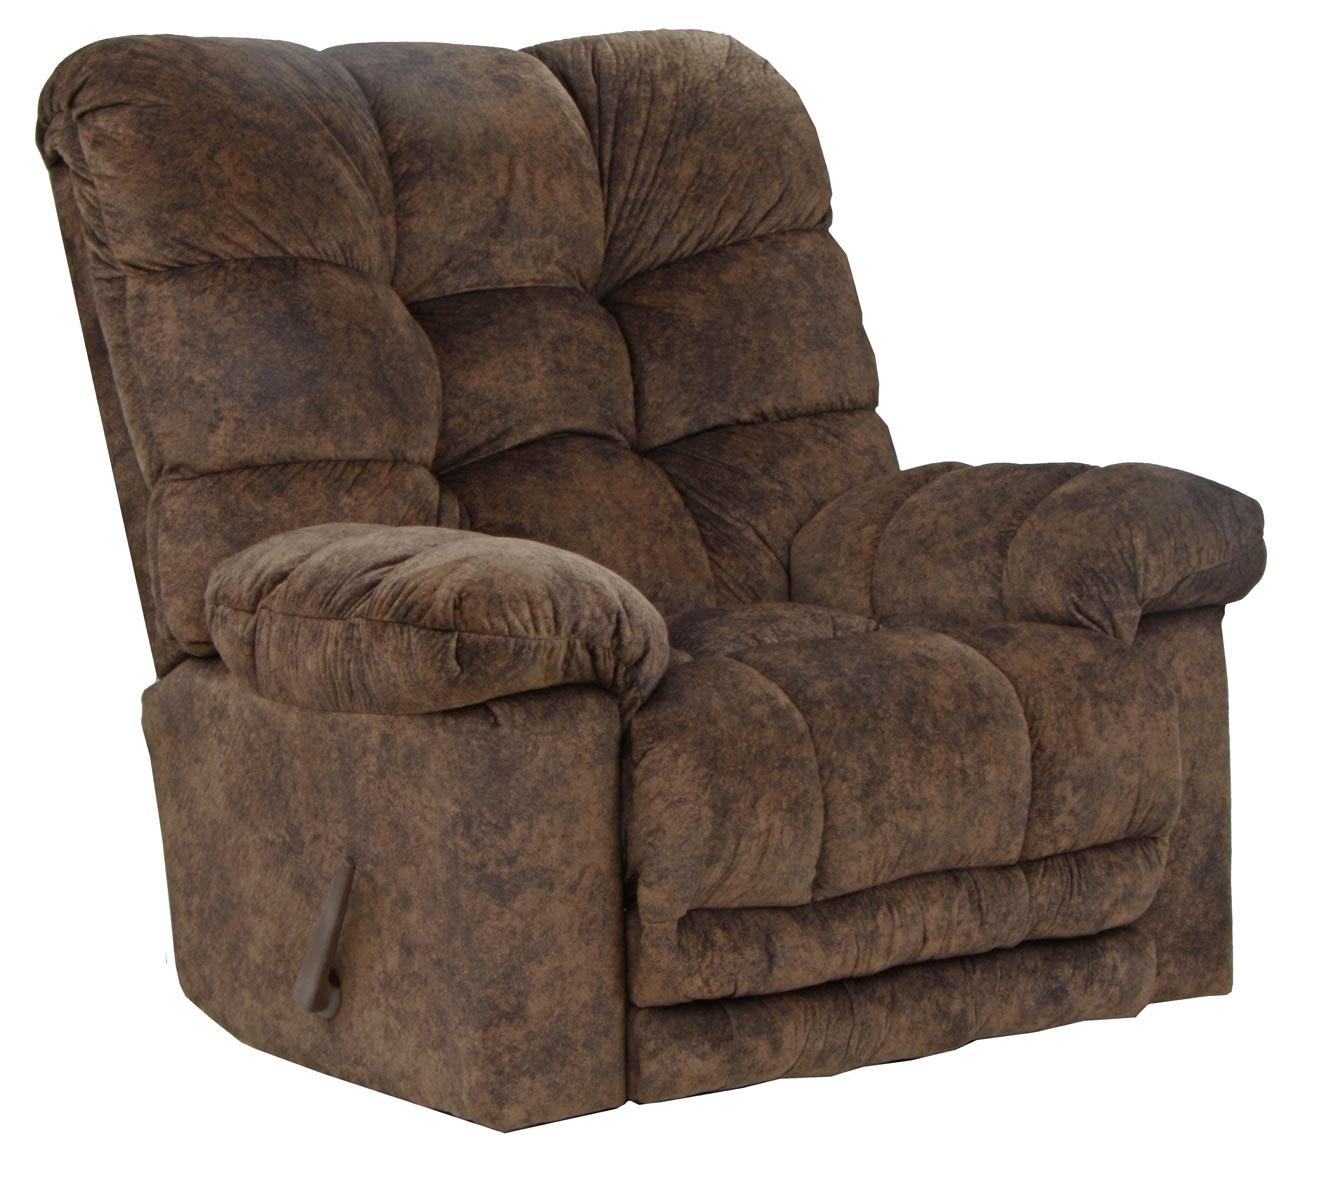 CatNapper Bronson Chaise Rocker Recliner with X-Tra Comfort Footrest - Chestnut 4690-2-Chestnut